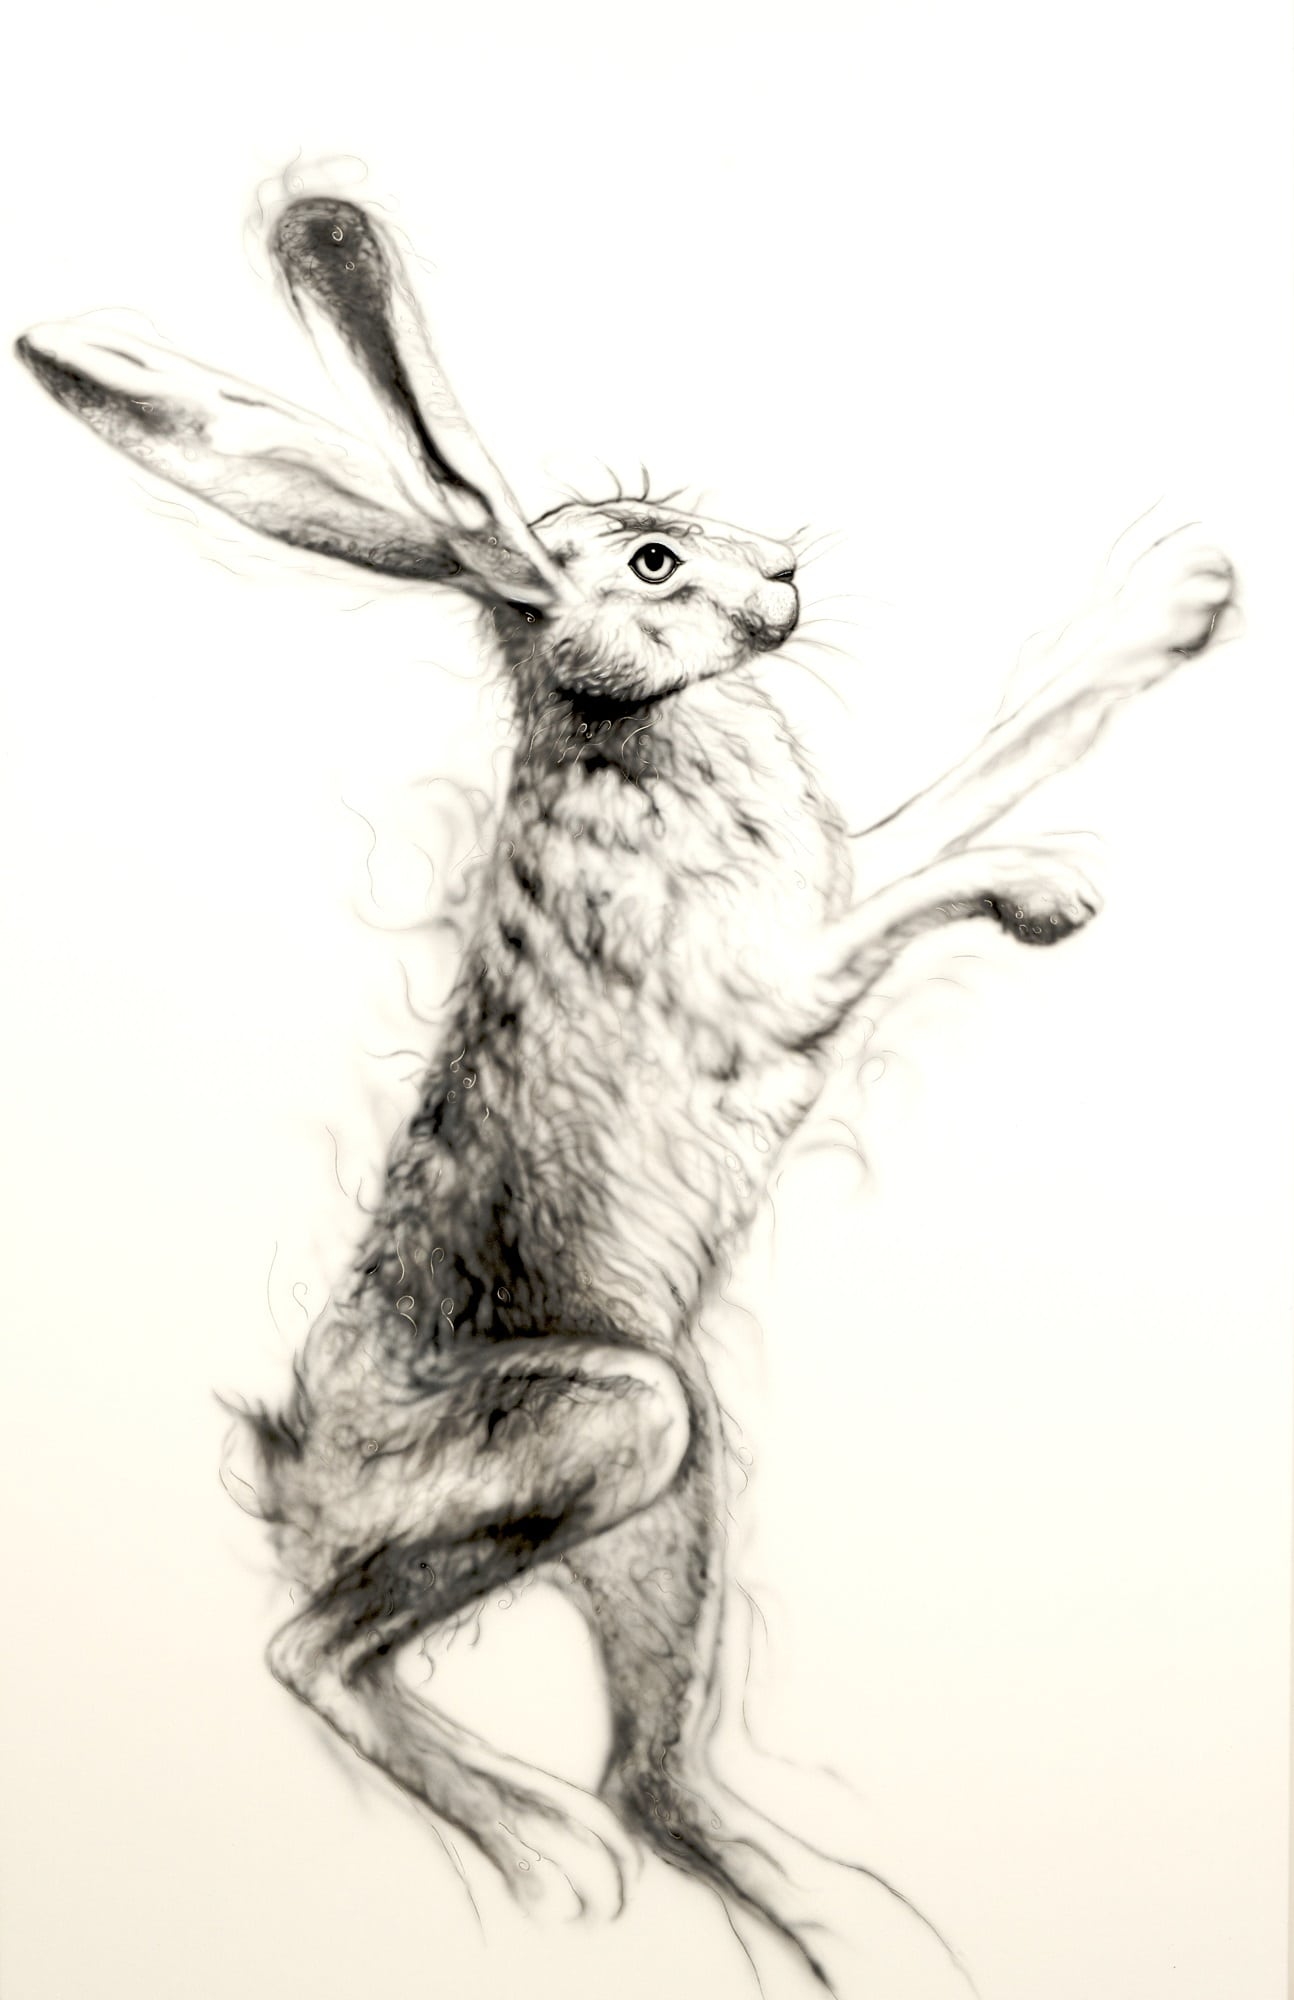 Silver Hare Female 1 a painting by Joanna May. Joanna uses silver paint threading through the image giving glamour and a sense of movement to the painting. This is a female hare boxing.